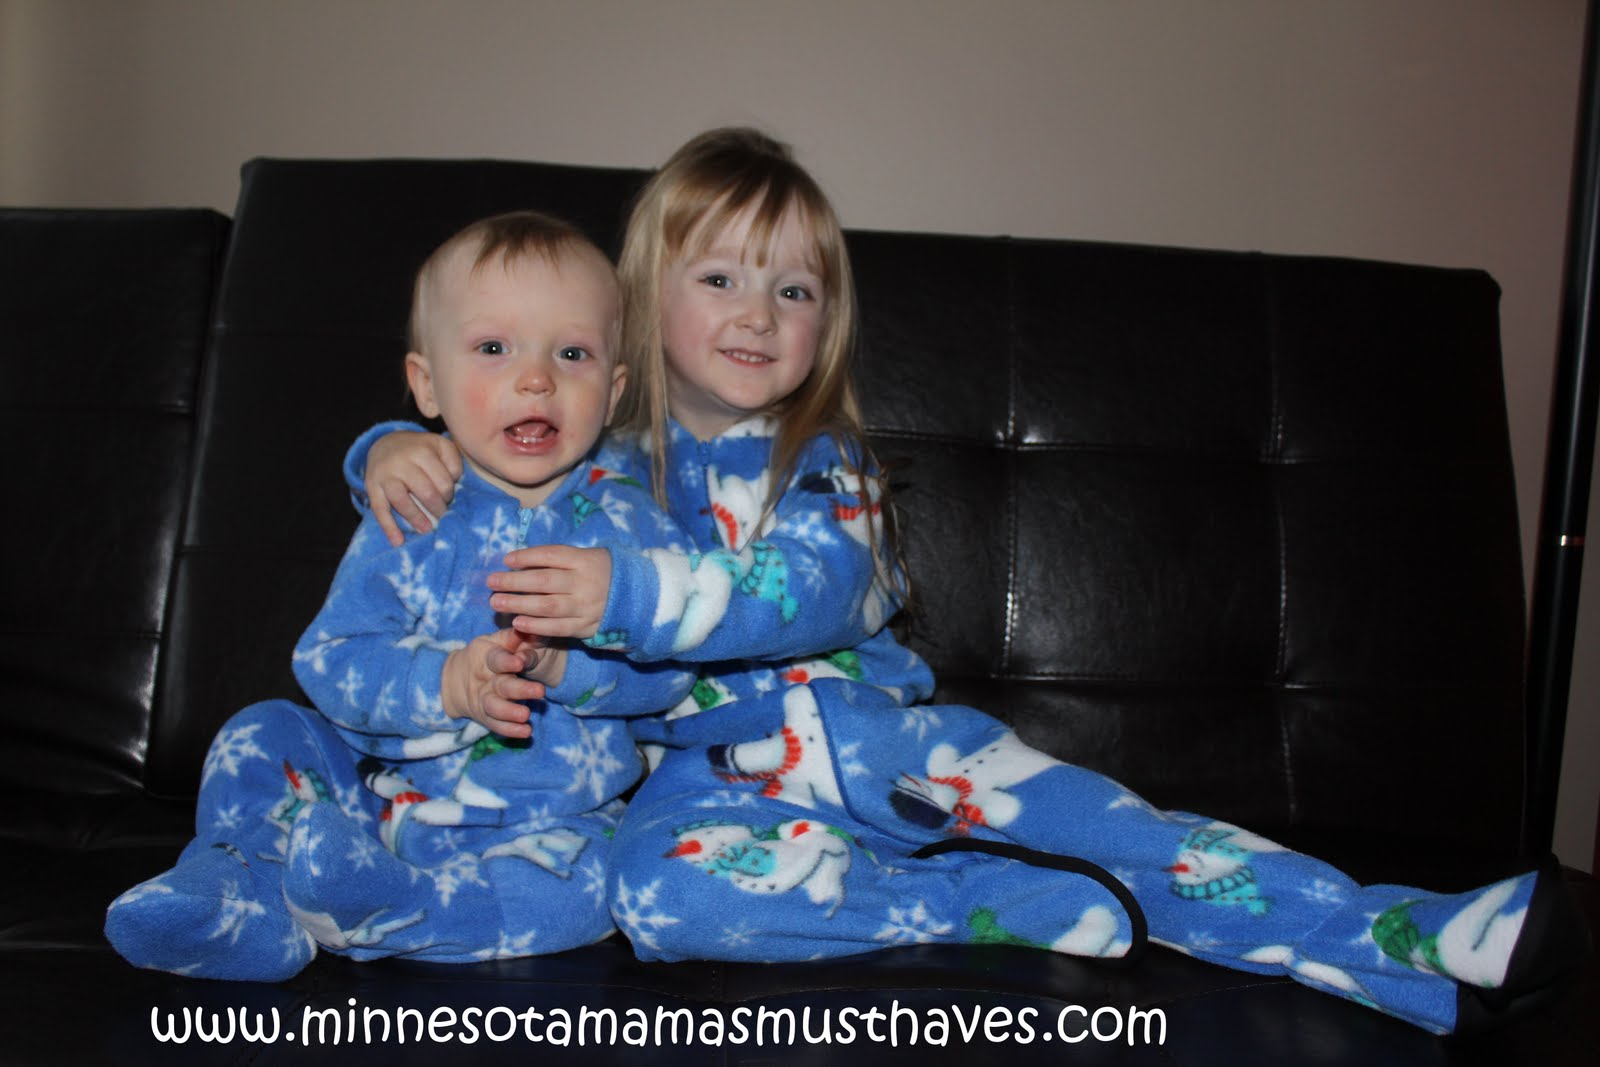 1a30b51cf5 Snug As A Bug is such a perfect name for the company these PJs come from.  My kids are definitely Snug As A Bug in these warm